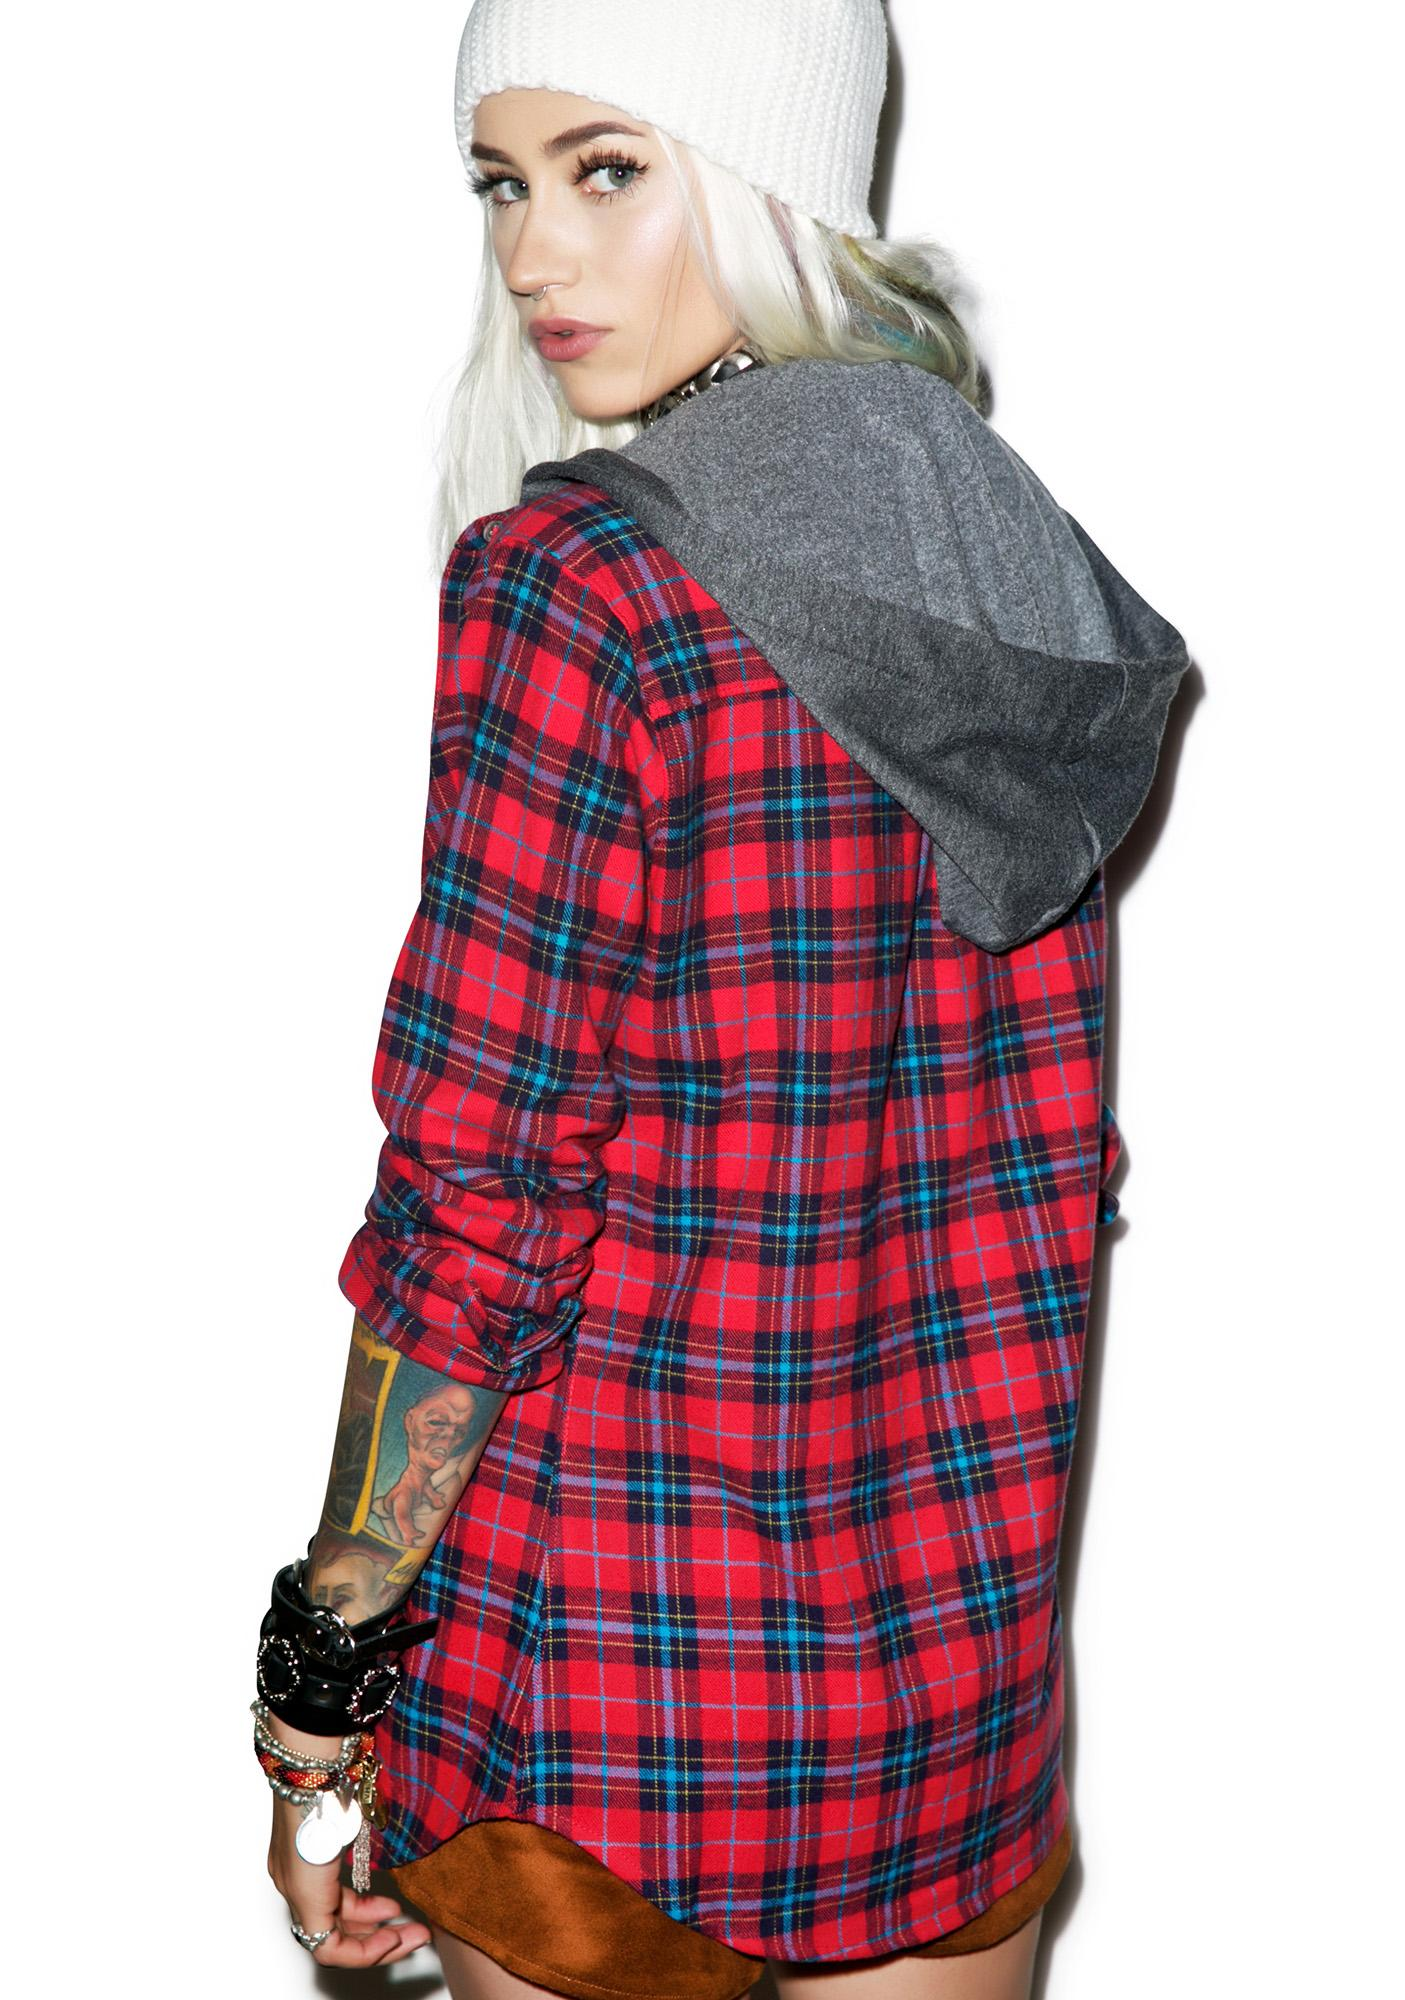 JET by John Eshaya Hooded Plaid Shirt